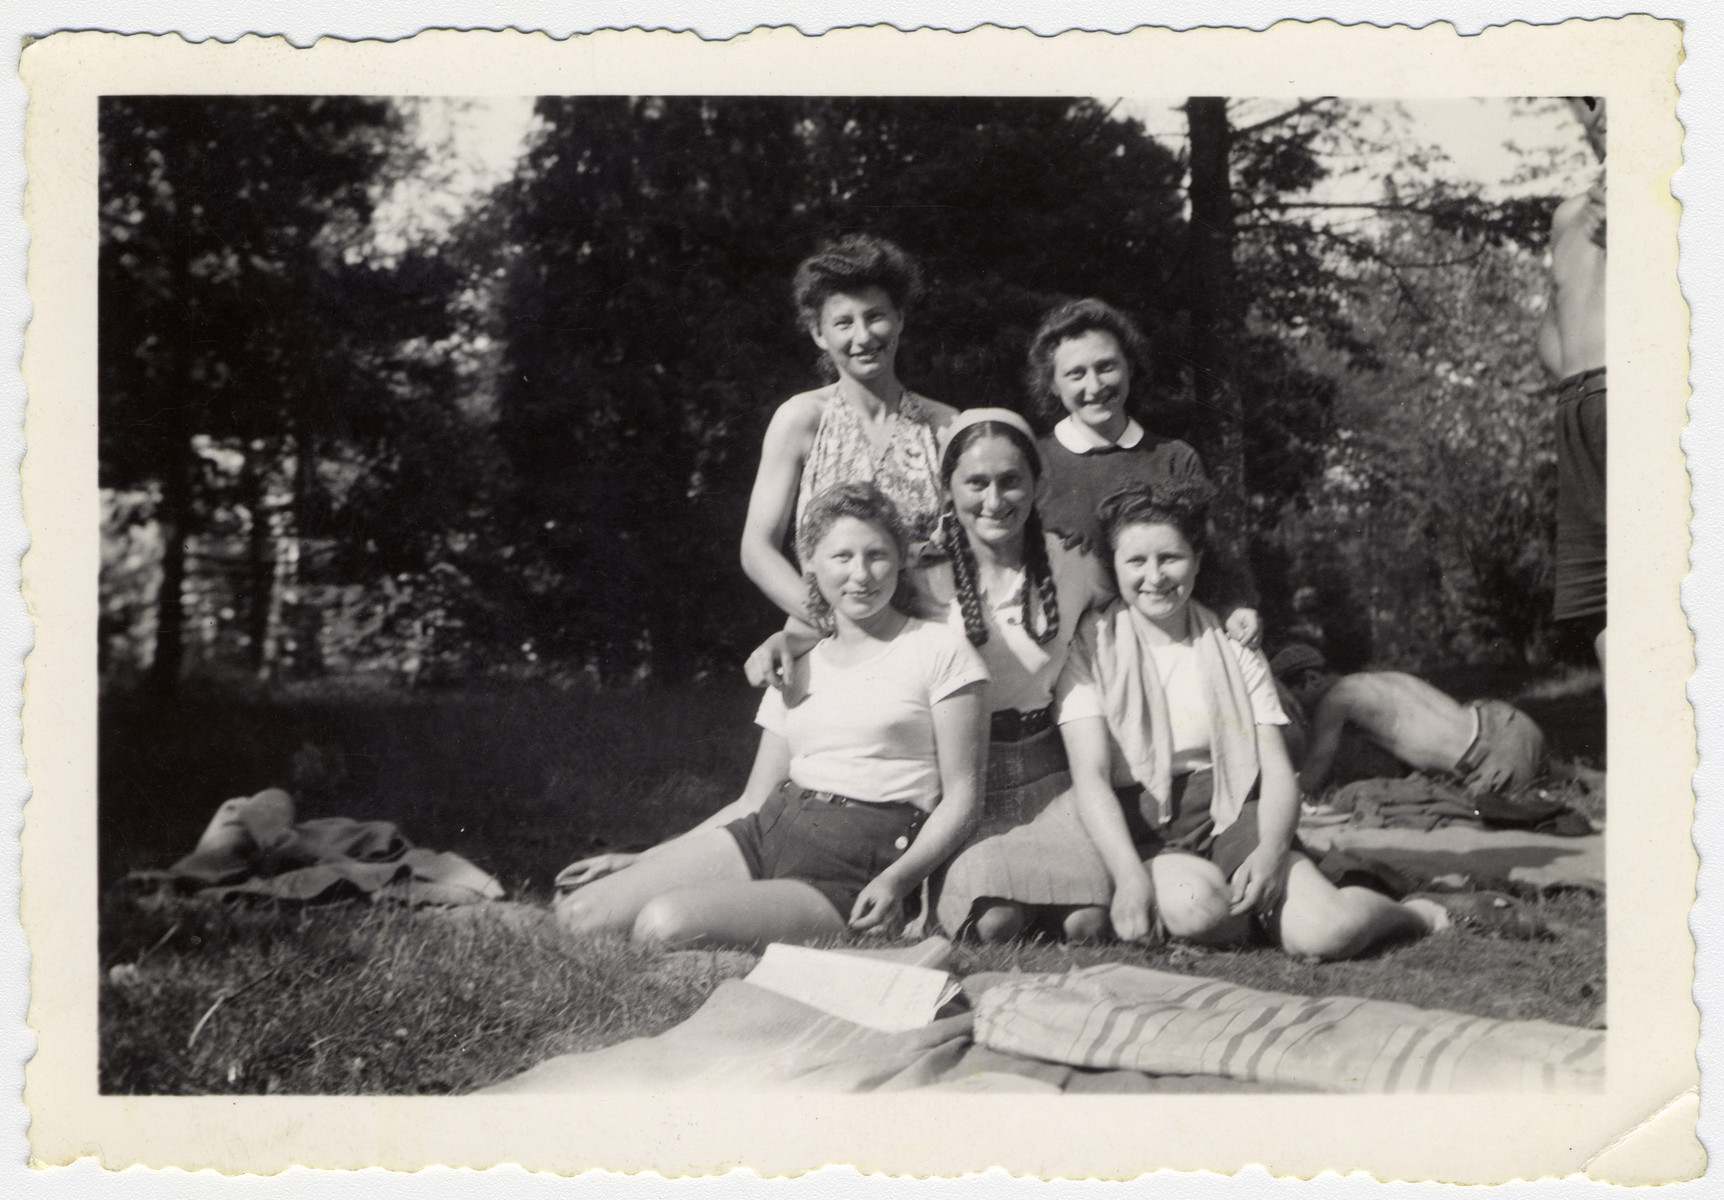 Group portrait of five teenage girls in the La Ramee agricultural school.  The school was established after Jewish students were expelled from general schools  and directed by Haroun Tazieff.